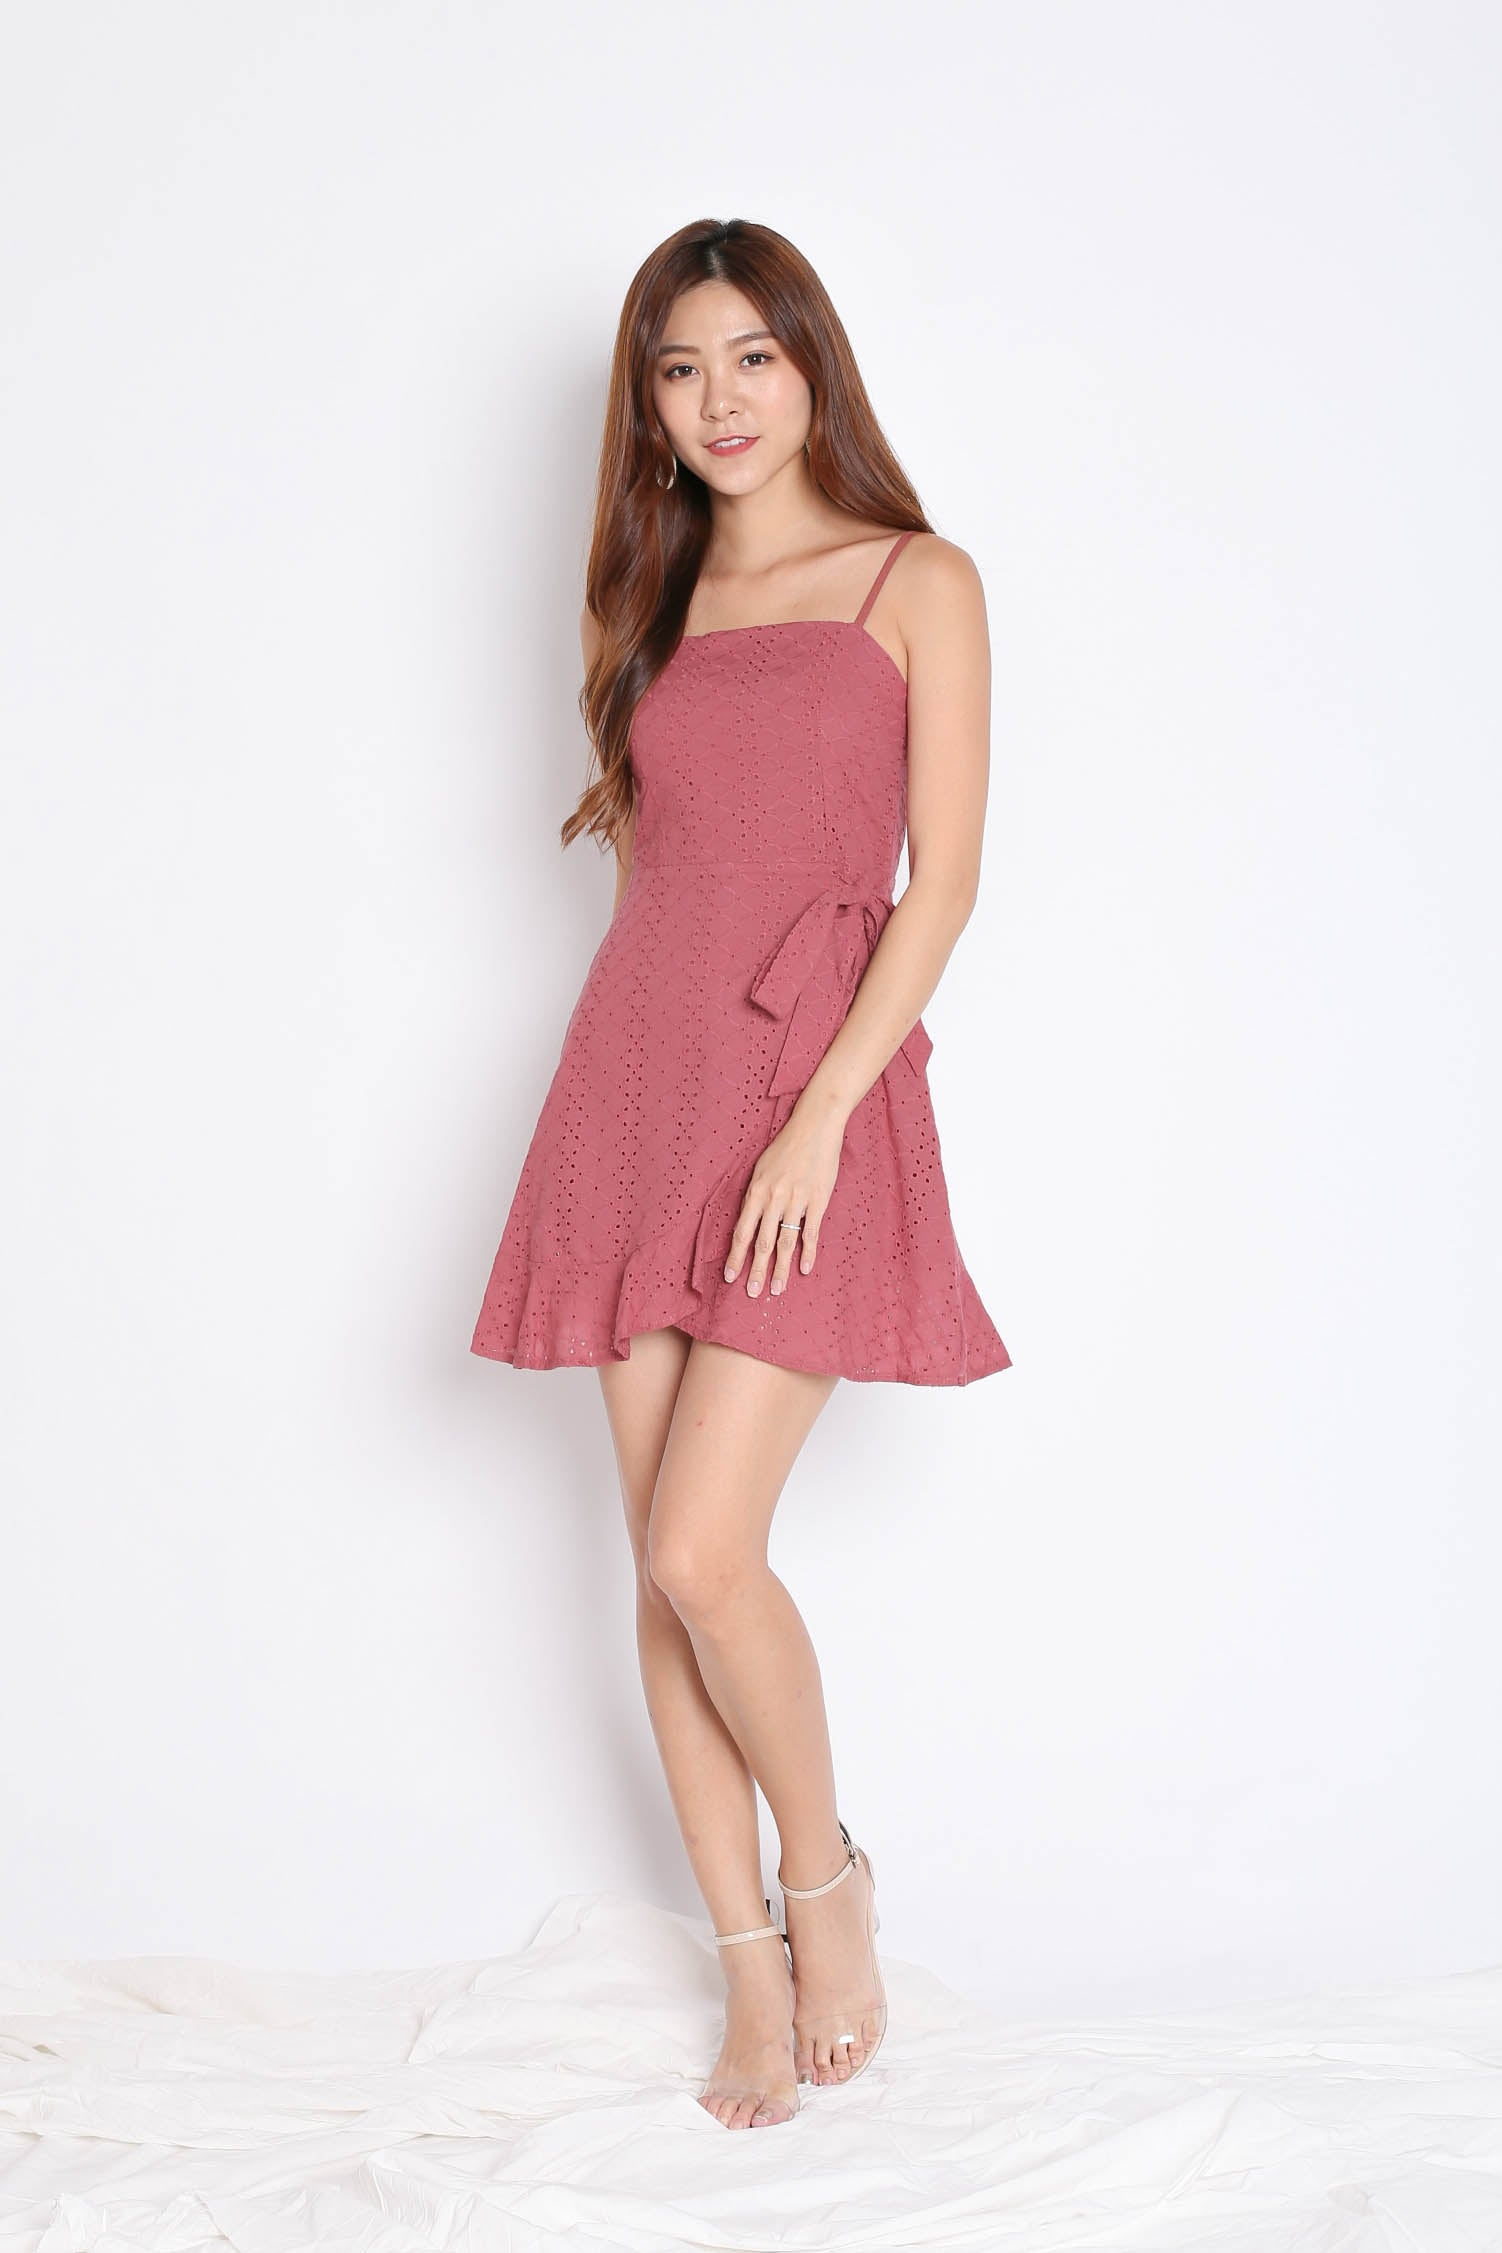 (PREMIUM) MAZEL EYELET WRAP DRESS IN PINK